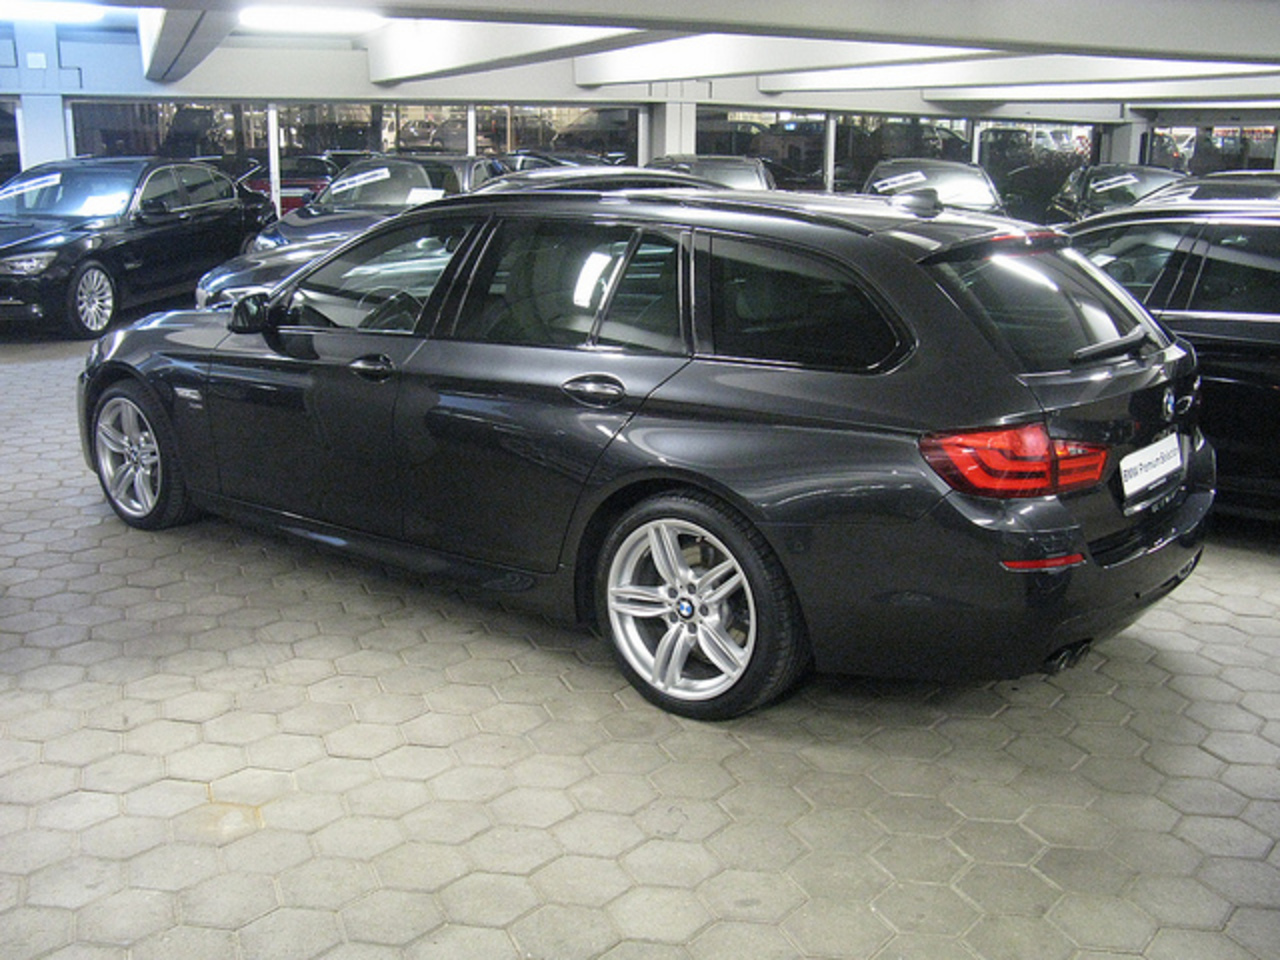 BMW 530d Touring X Drive M Sport F11 | Flickr - Photo Sharing!